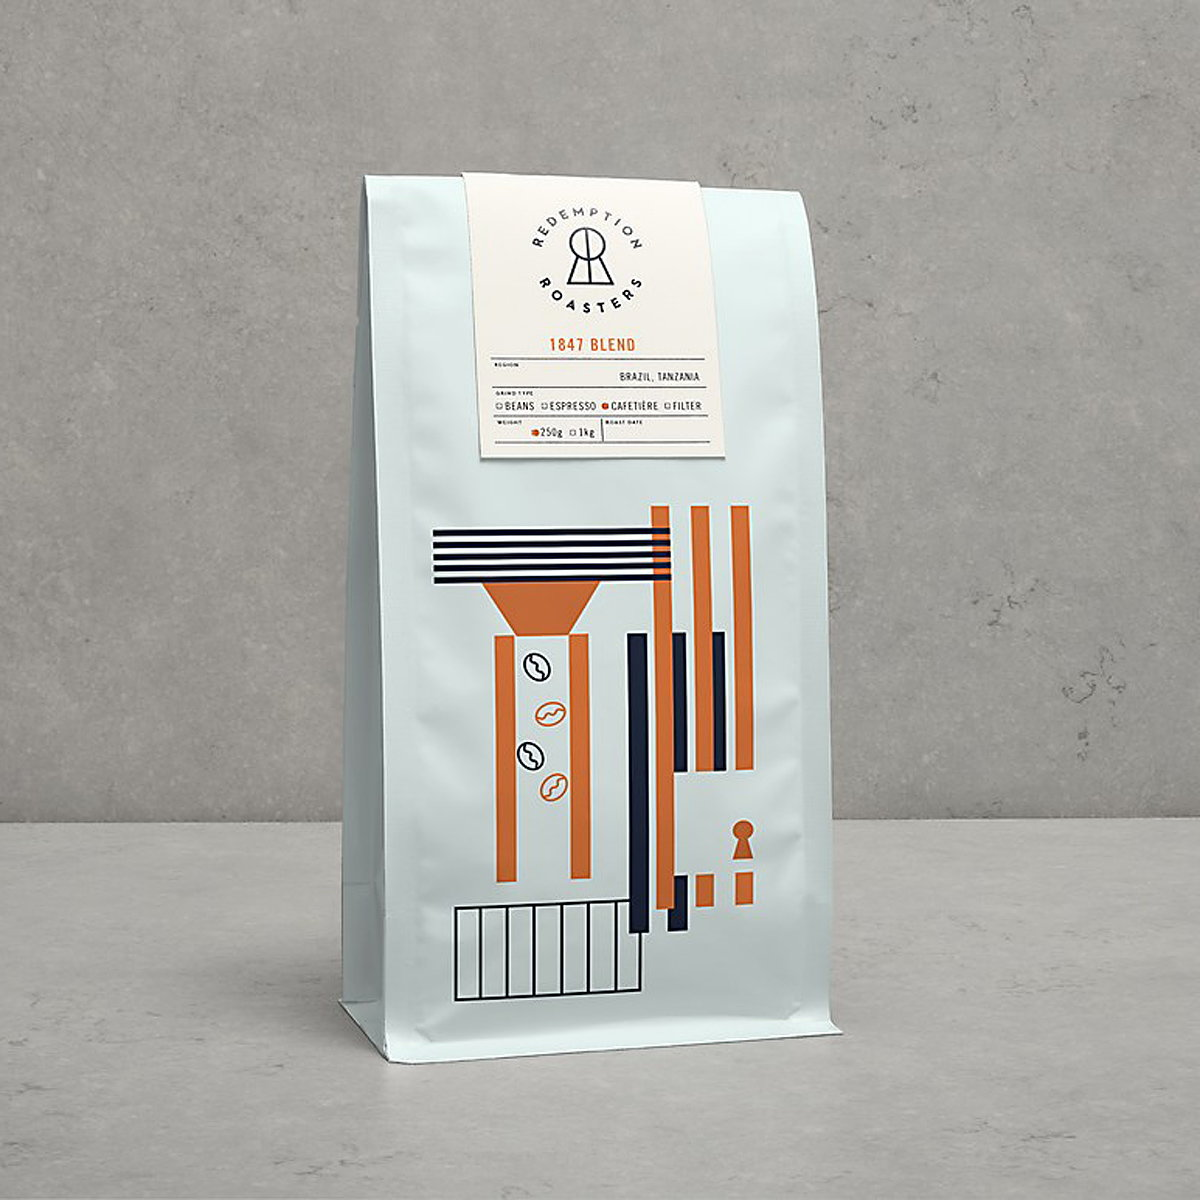 Here Design Creates New Brand Identity for Redemption Roasters